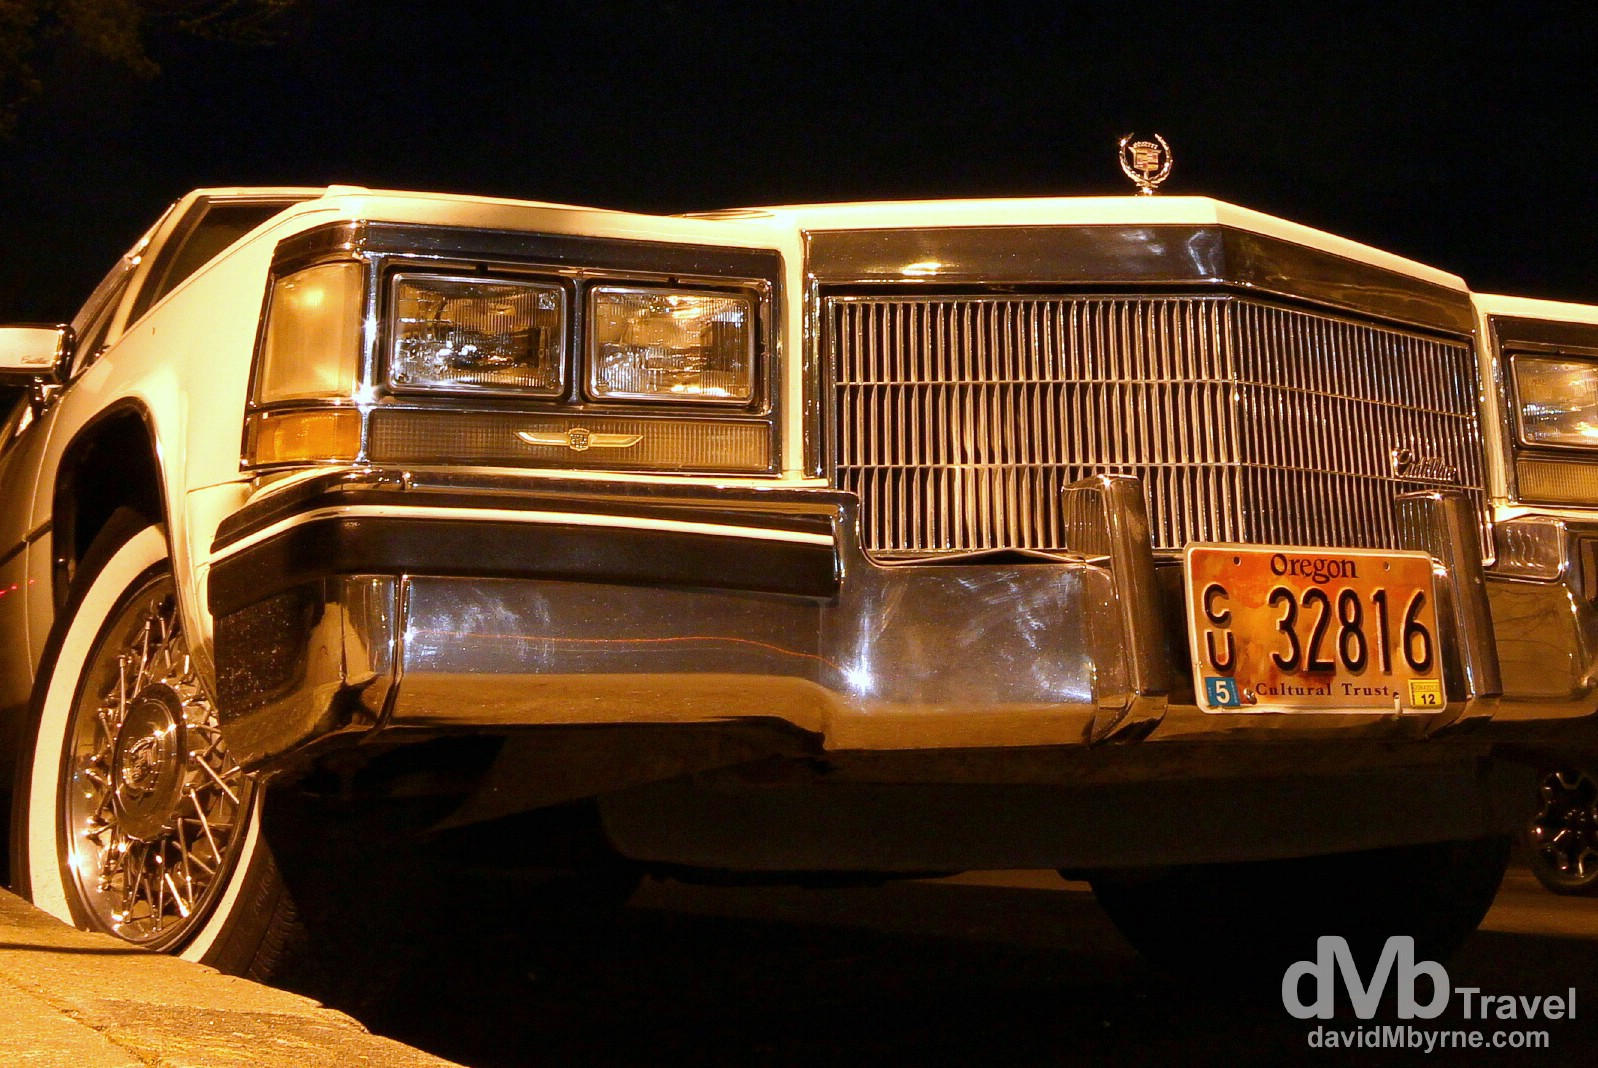 A Cadillac off Alberta street in the Alberta Arts District in Portland, Oregon, USA. March 28, 2013.